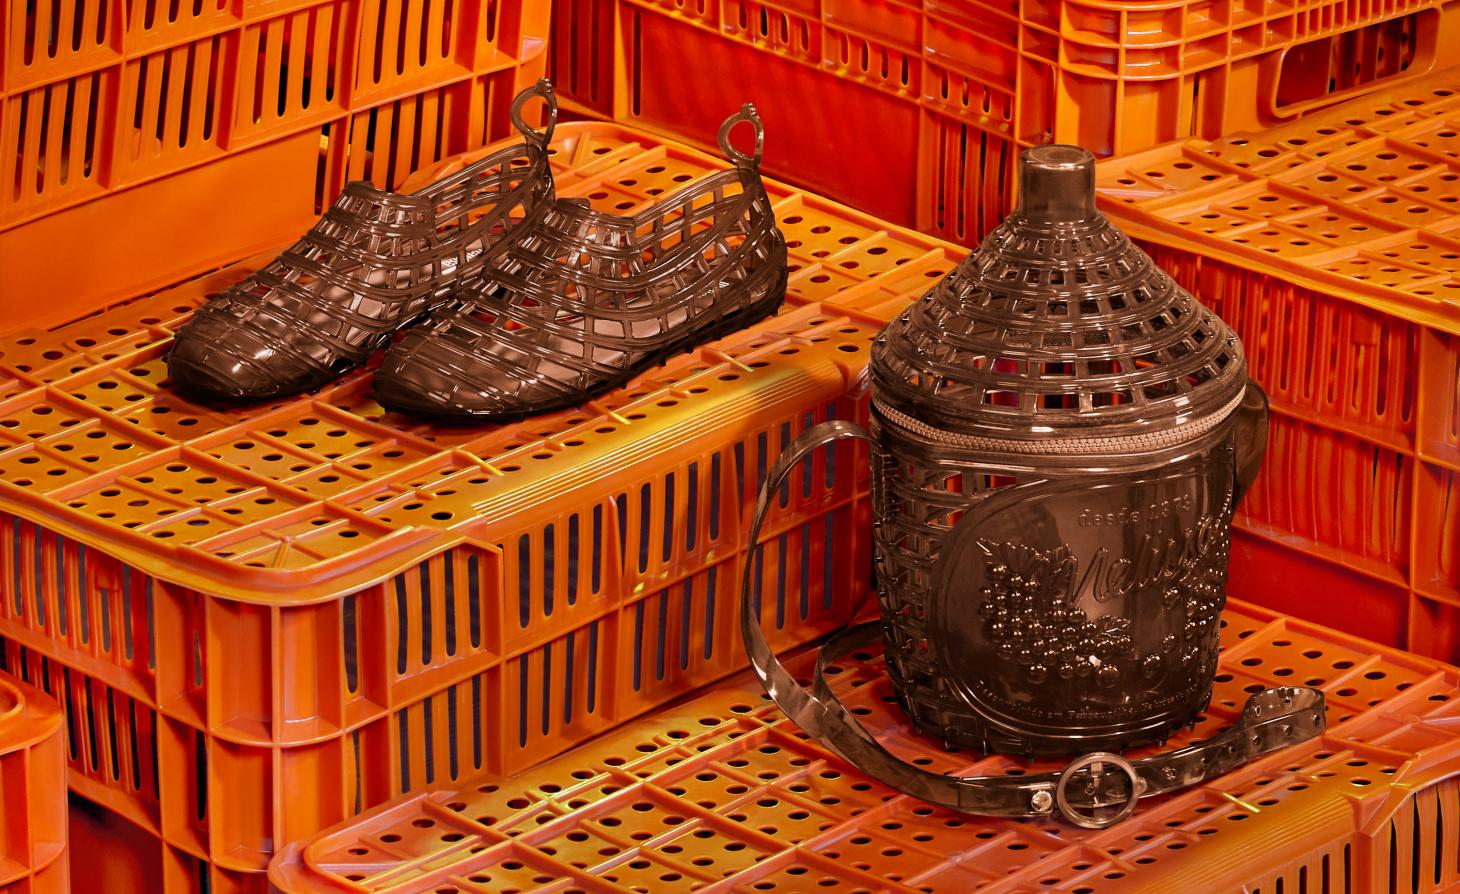 A pair of brown lattice shoes lie on orange plastic crates